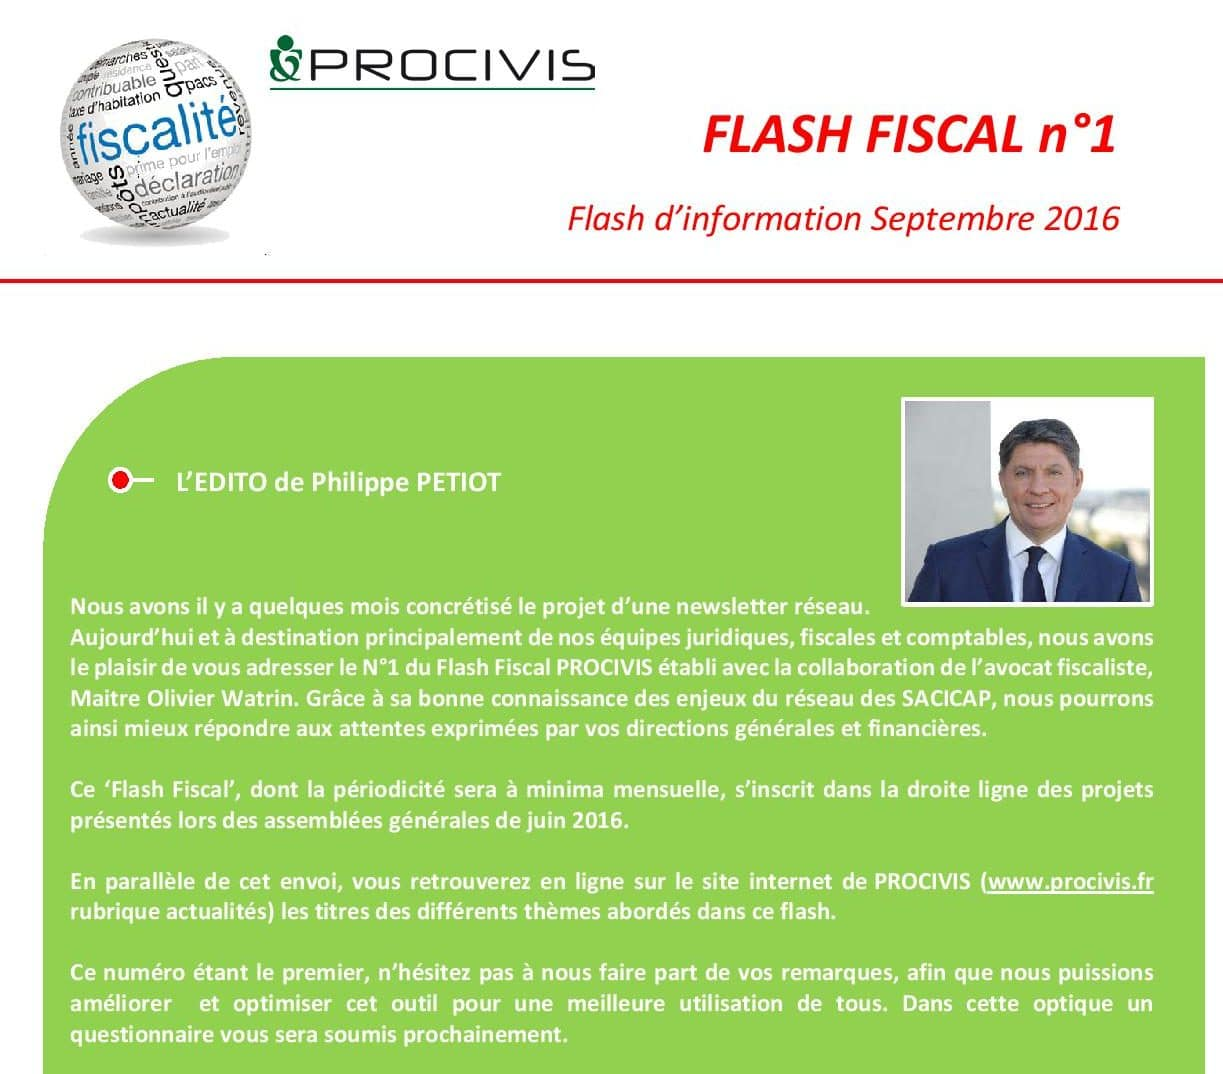 flash-fiscal-n1-1-page-001